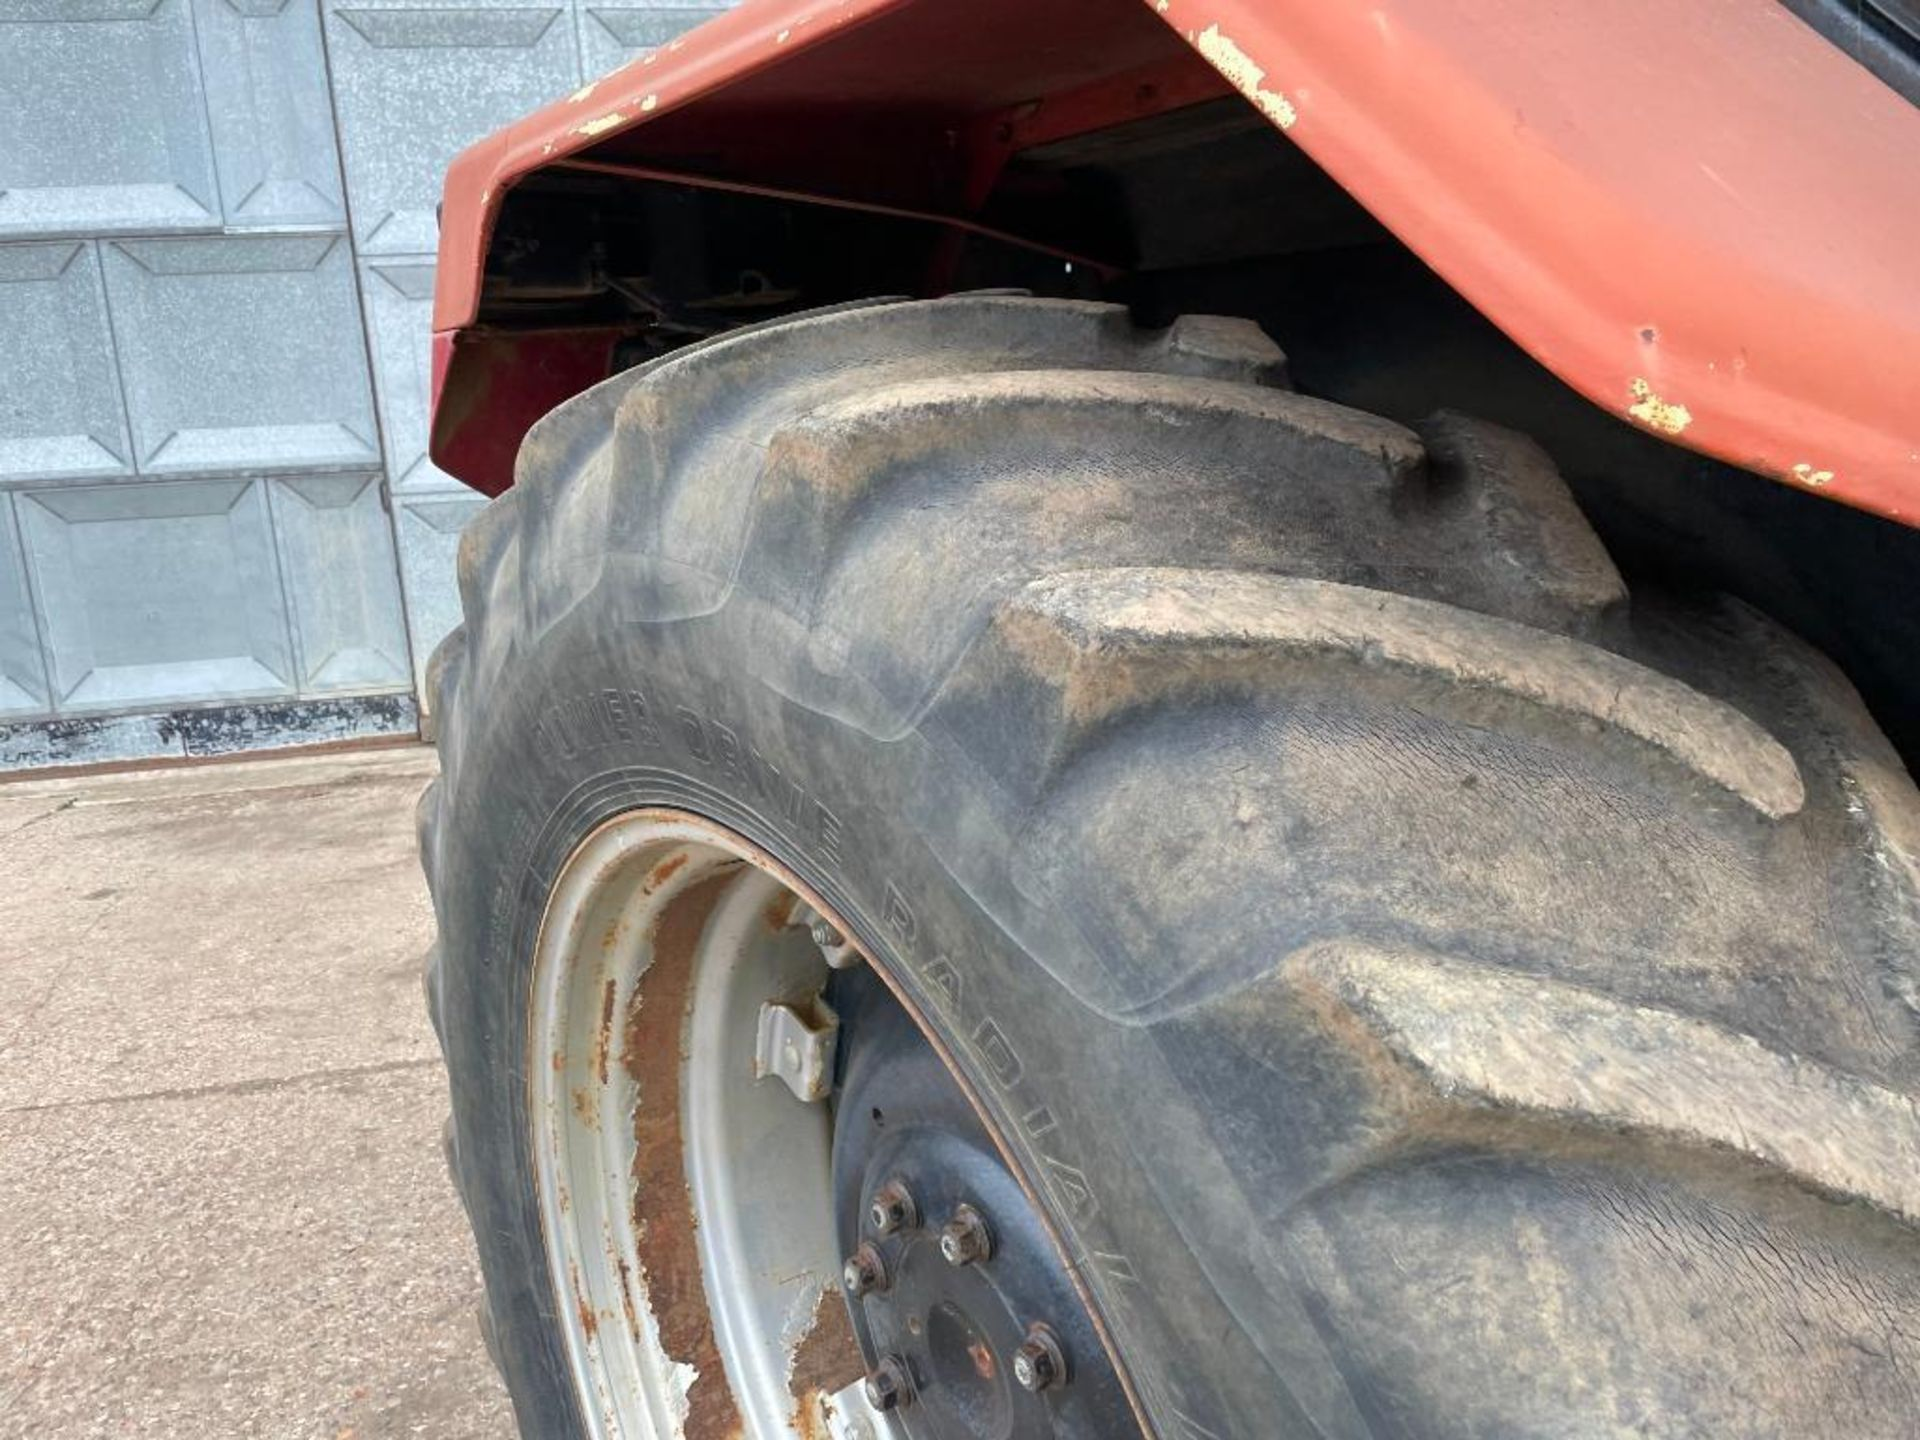 1997 Case IH 5150 Maxxum Plus Powershift 4wd tractor with 2 spools, PUH and front wafer weights on 1 - Image 4 of 13